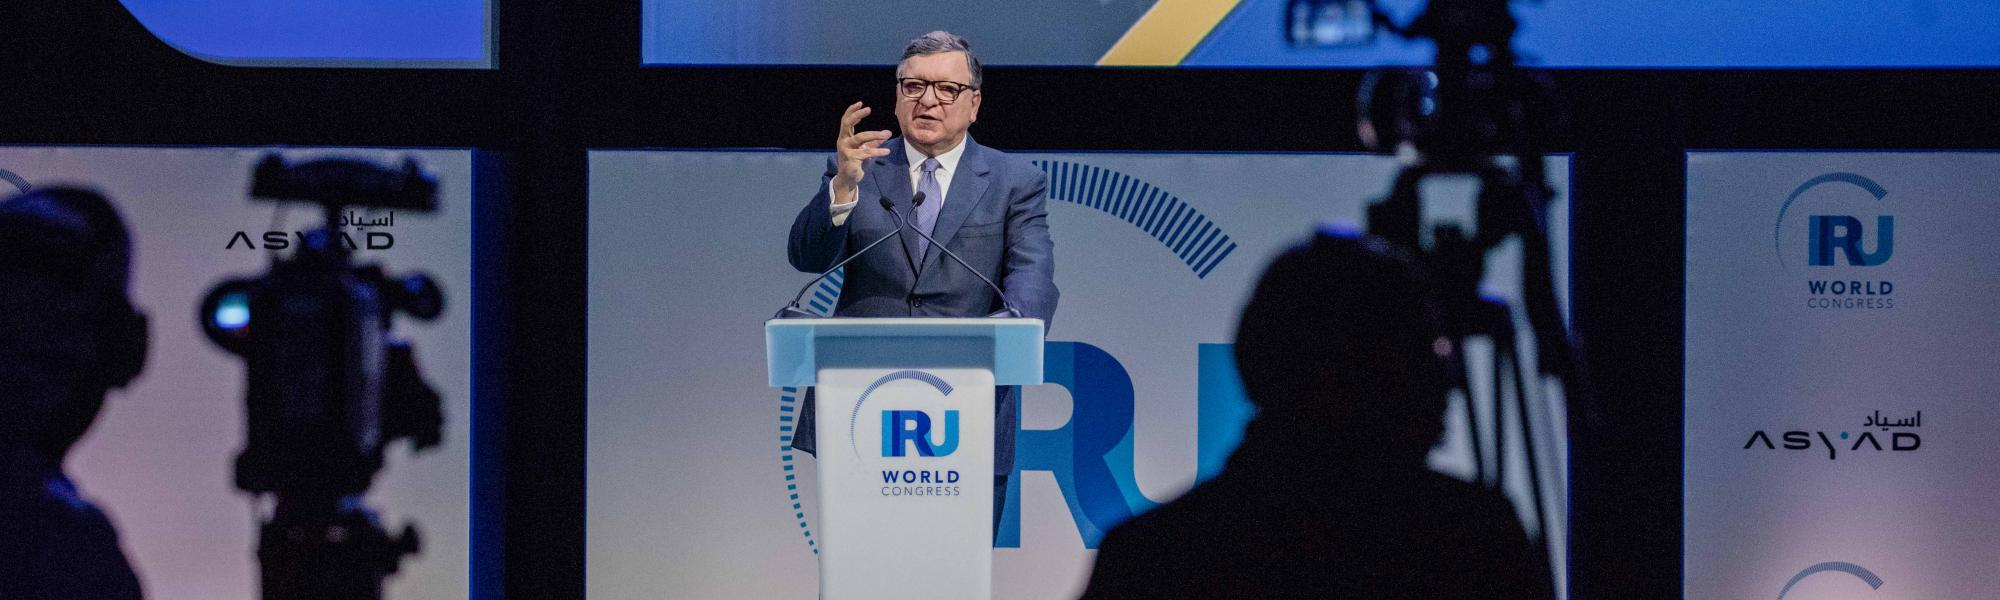 IRU World Congress kicks off in Muscat